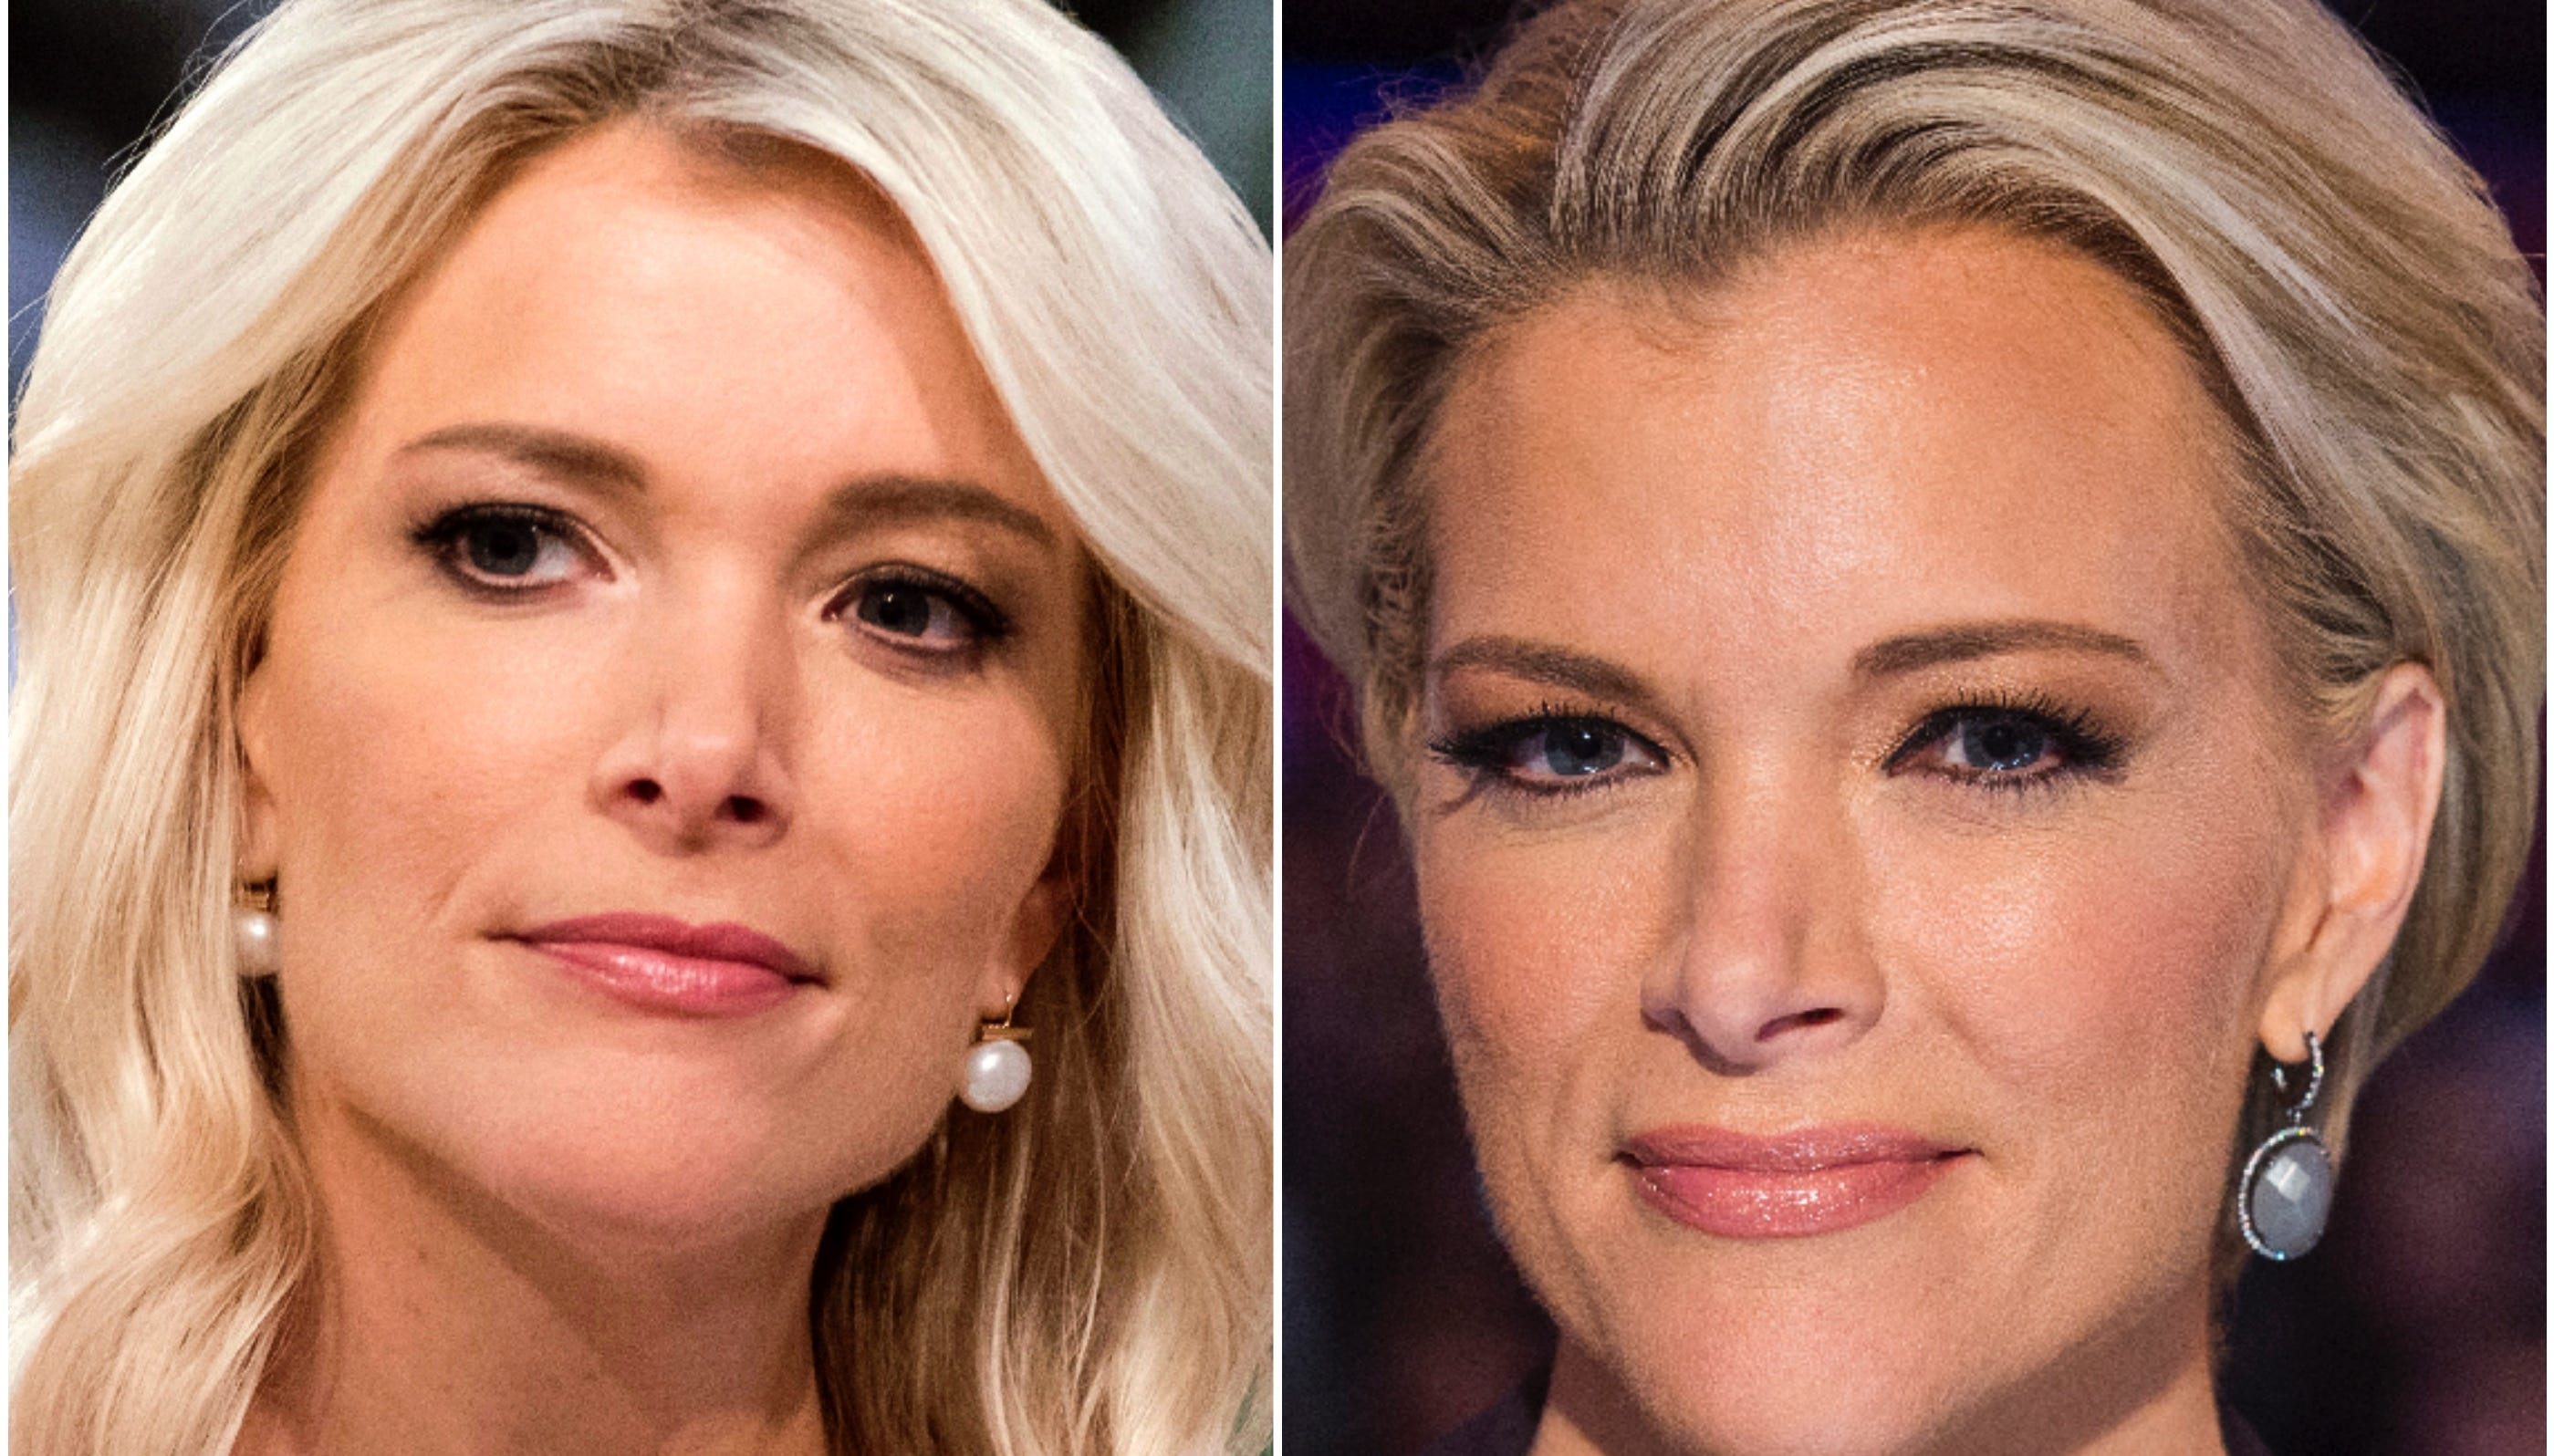 Megyn Kelly has reset the clock back to 2016, at least as far as her look is concerned.